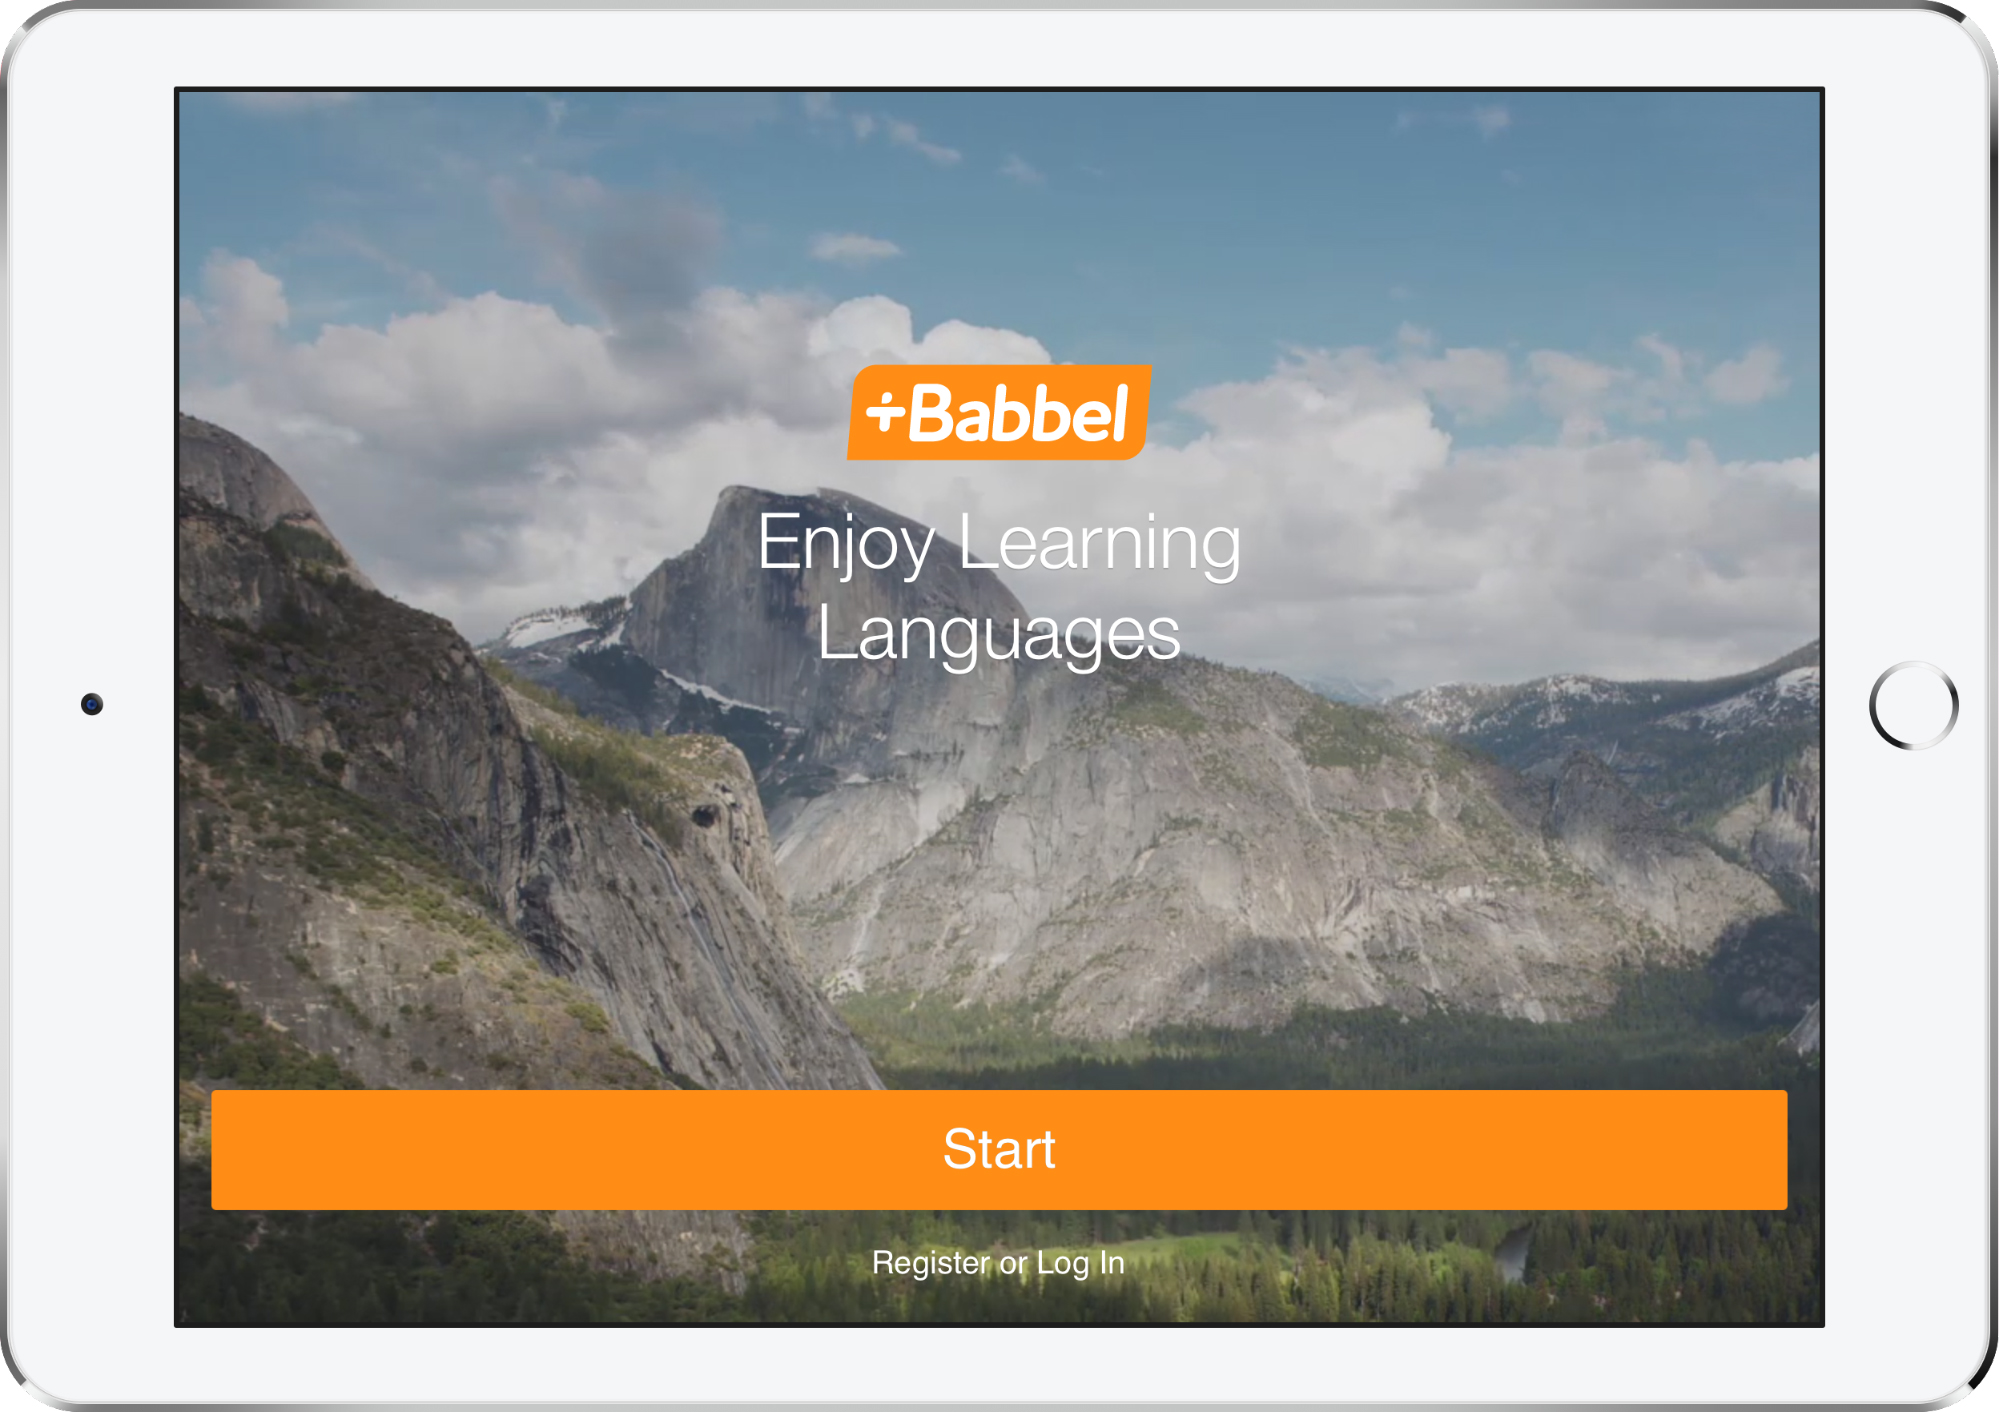 Babbel Review - Who is Babbel For